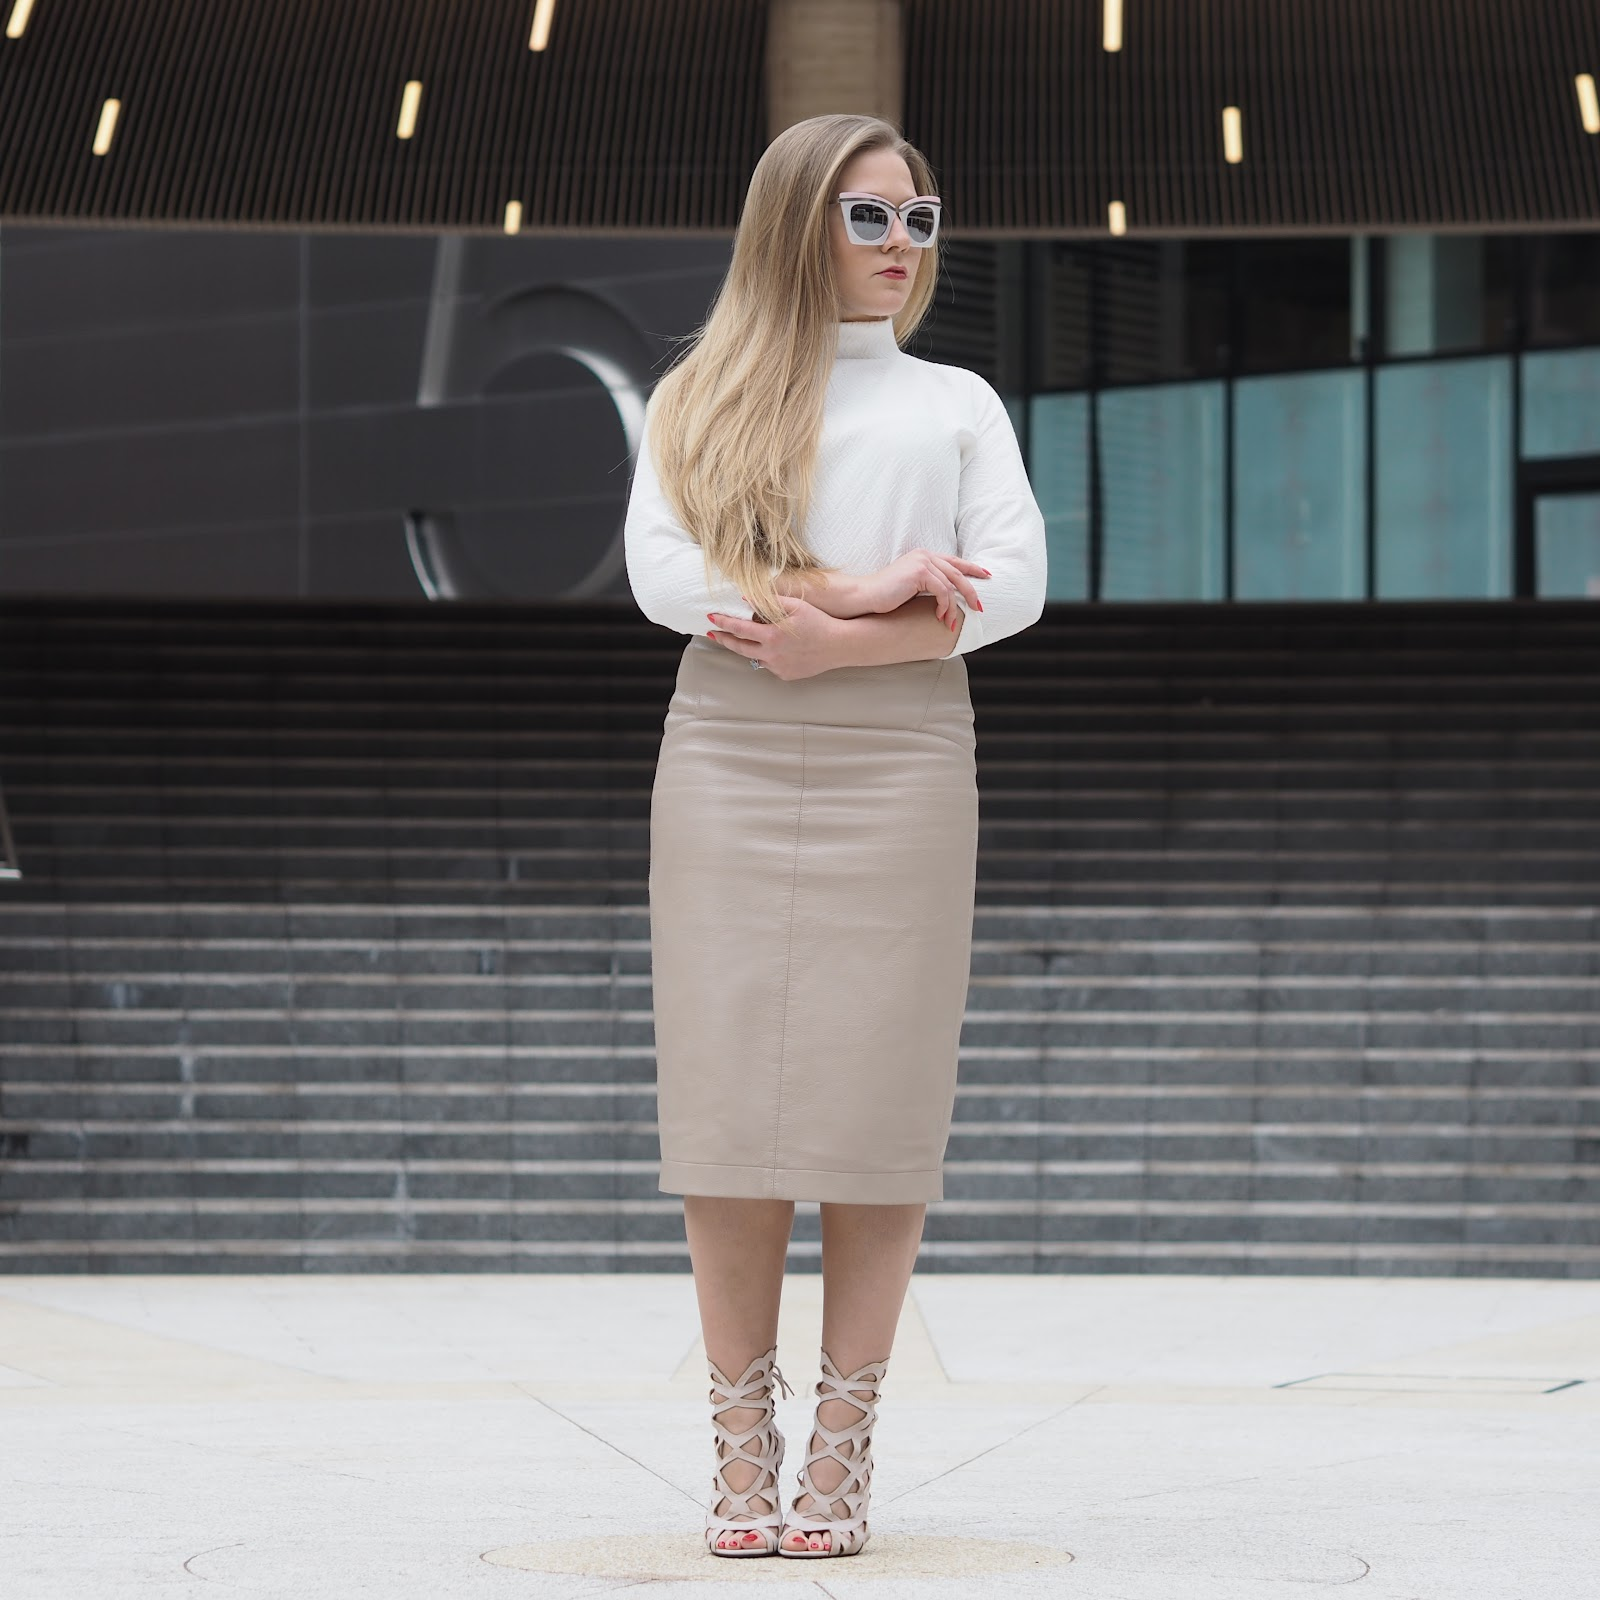 Girl wearing retro sunglasses, white roll neck top, leather skirt and caged, misguided heels